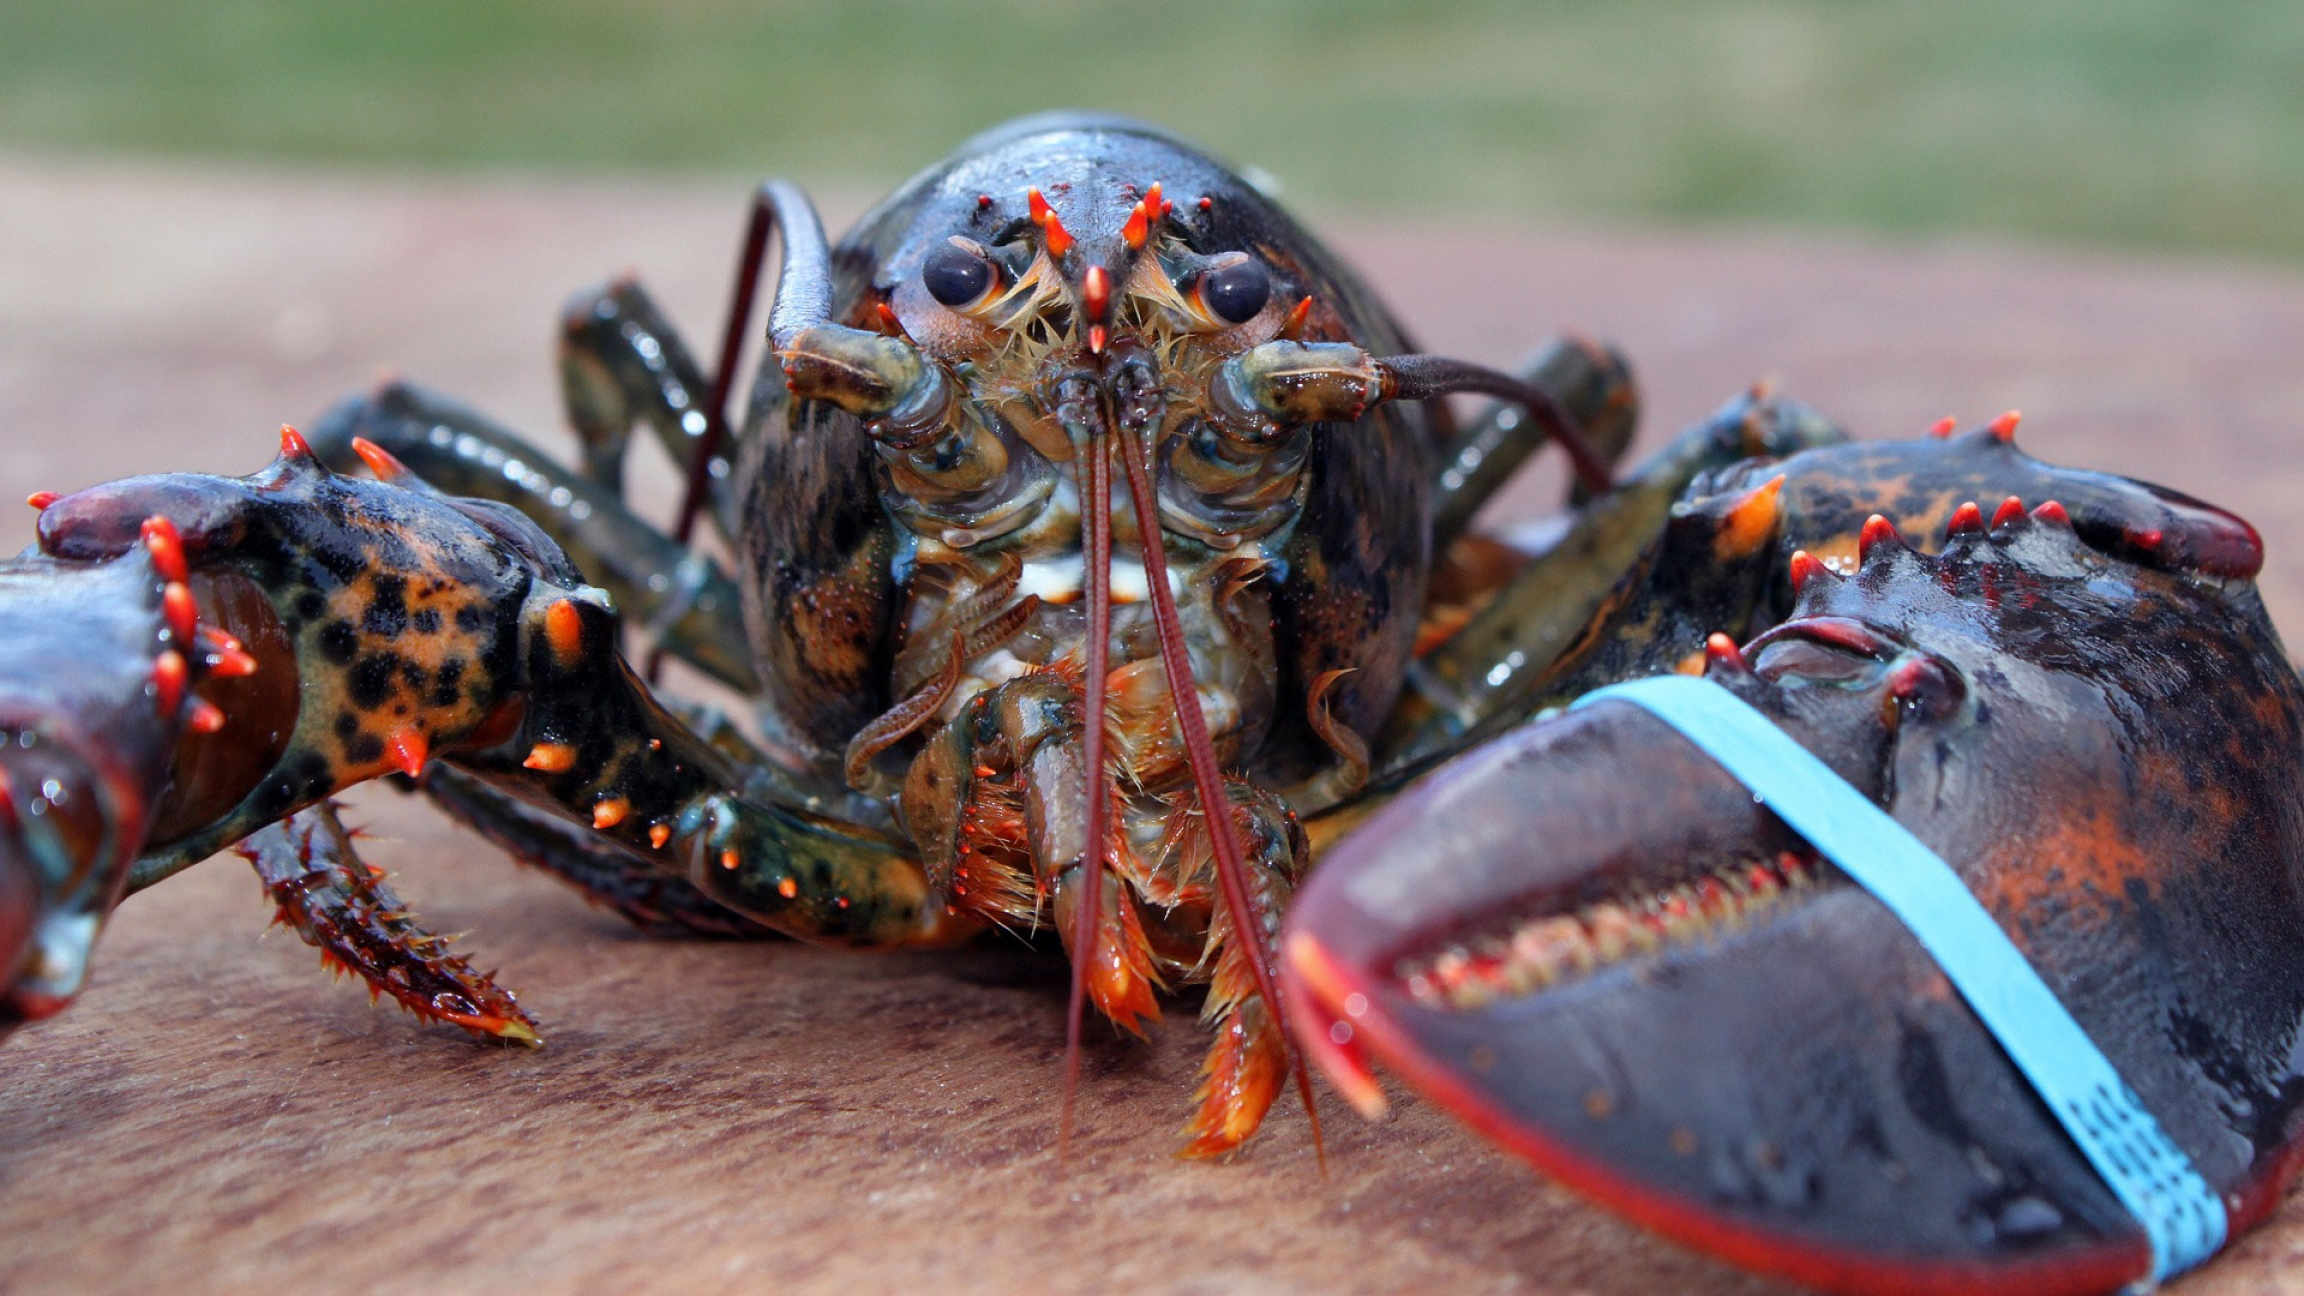 A lobster, up close, with a blue rubber band on its claw.